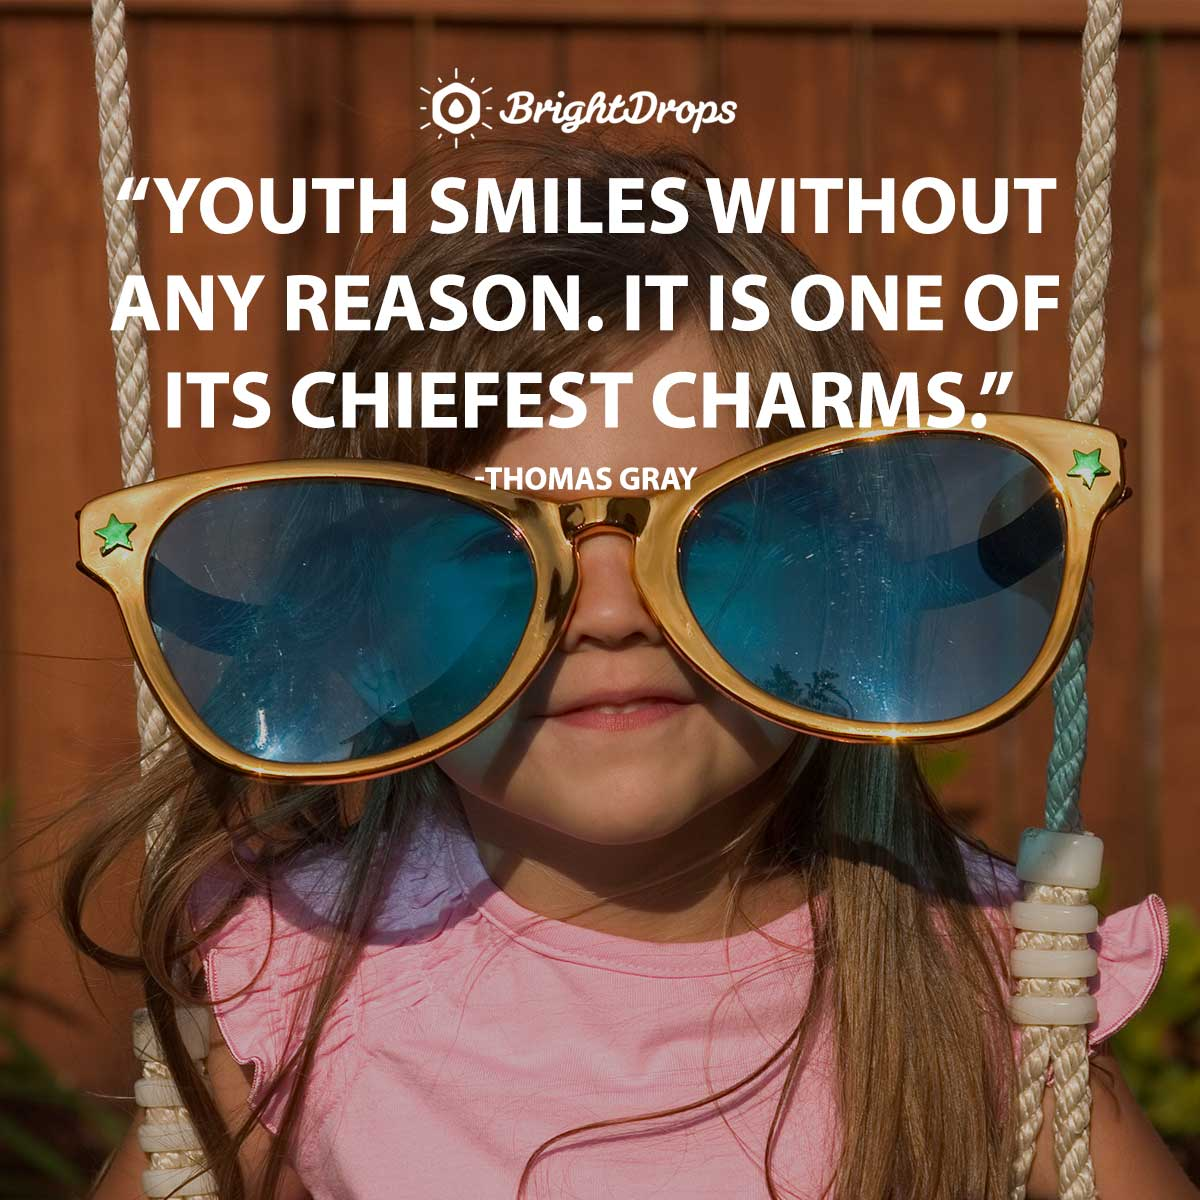 Youth smiles without any reason. It is one of its chiefest charms. -Thomas Gray